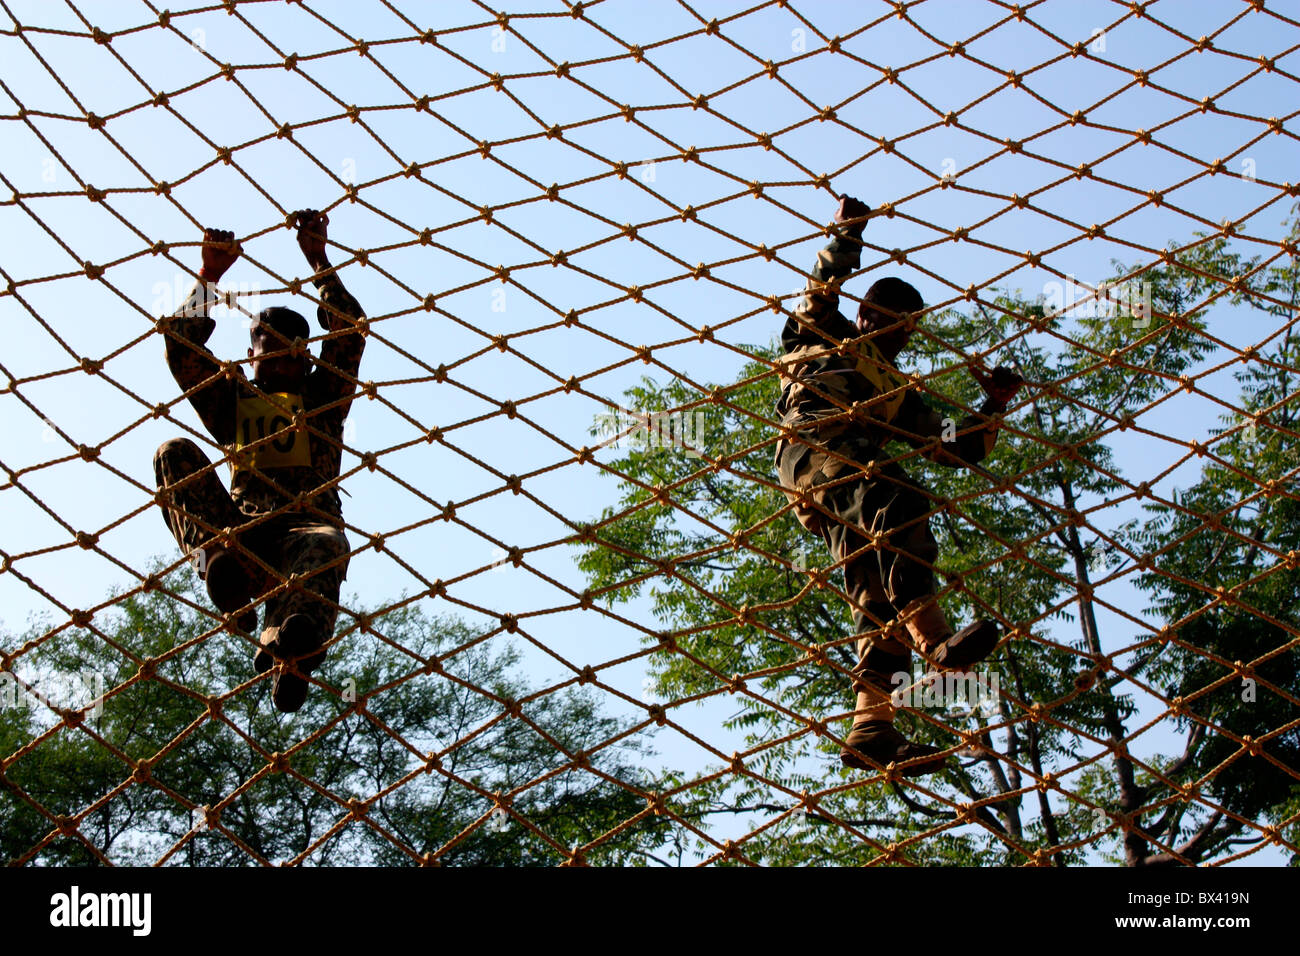 Des soldats indiens crossing obstacle net Photo Stock